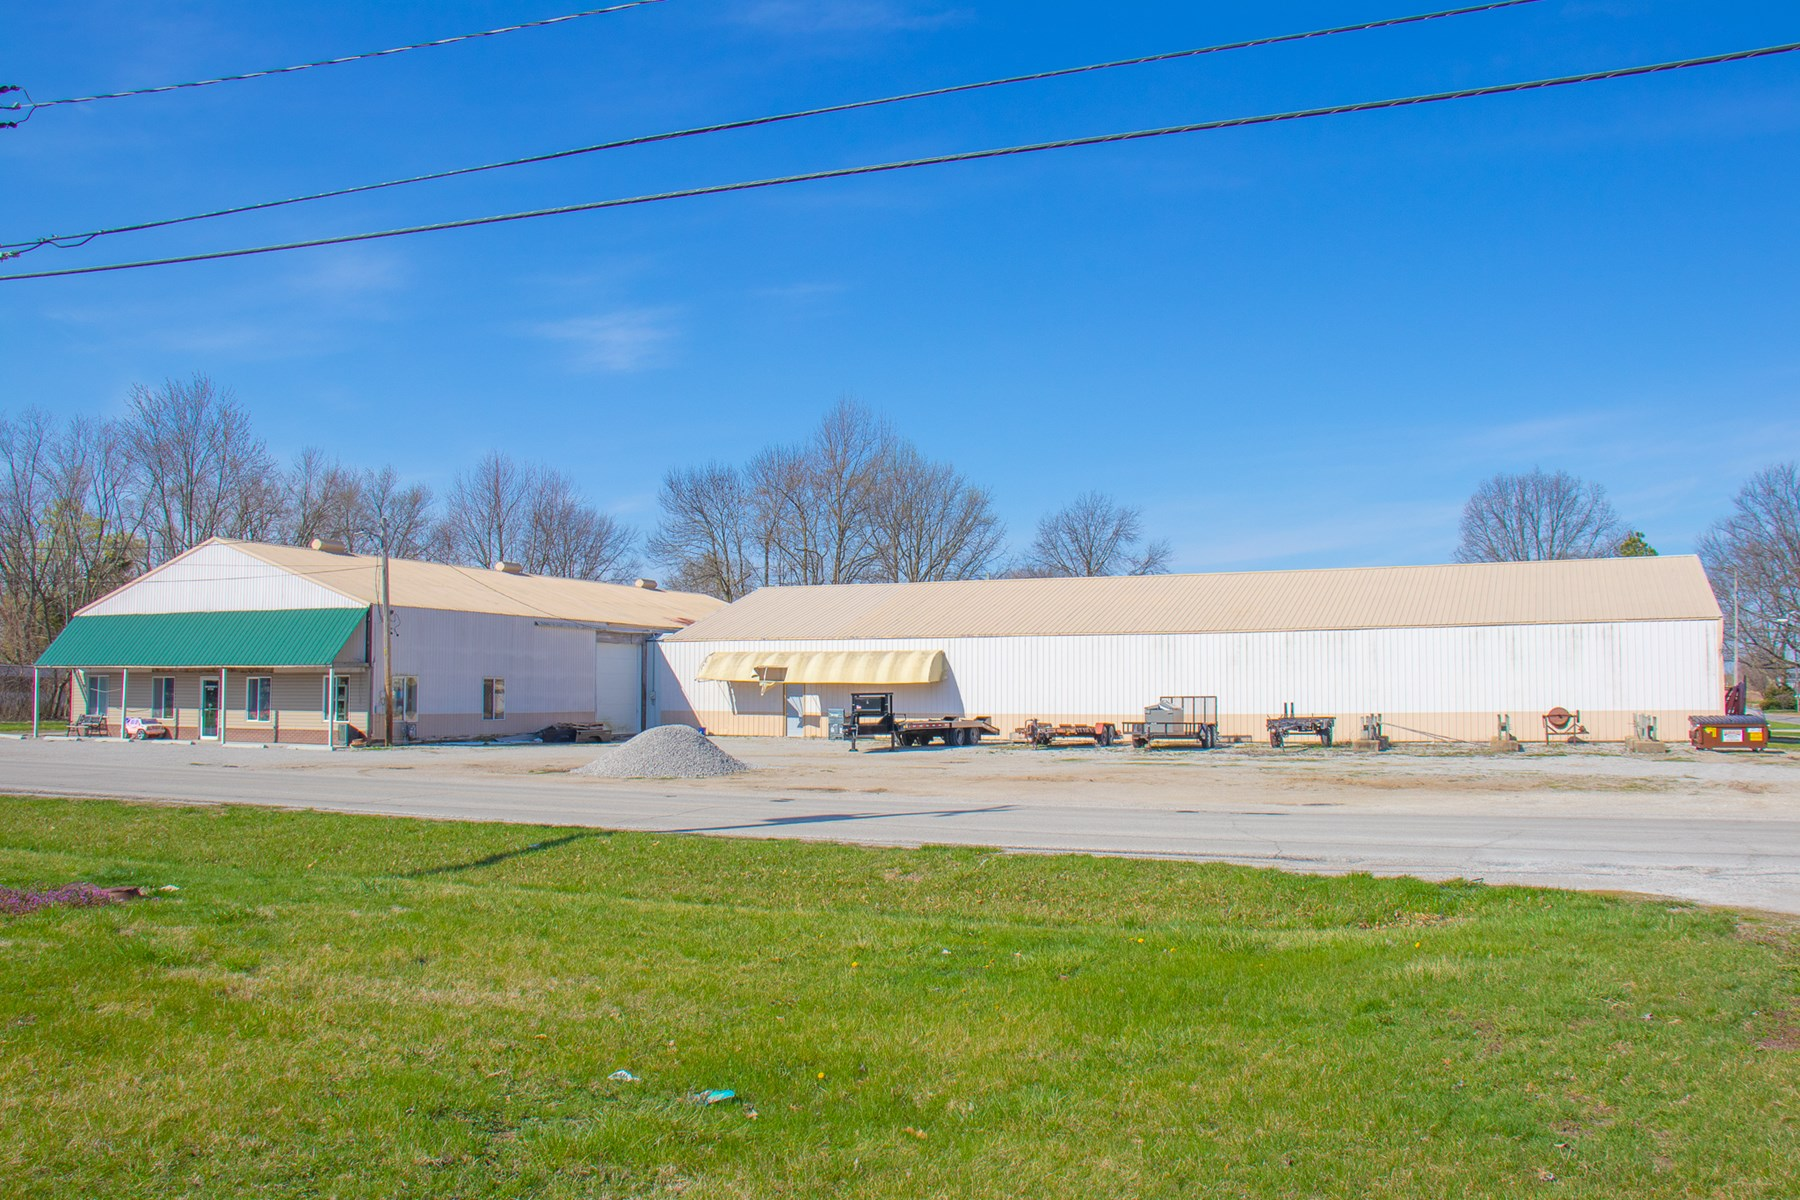 Large Commercial Building For Sale in Carlinville